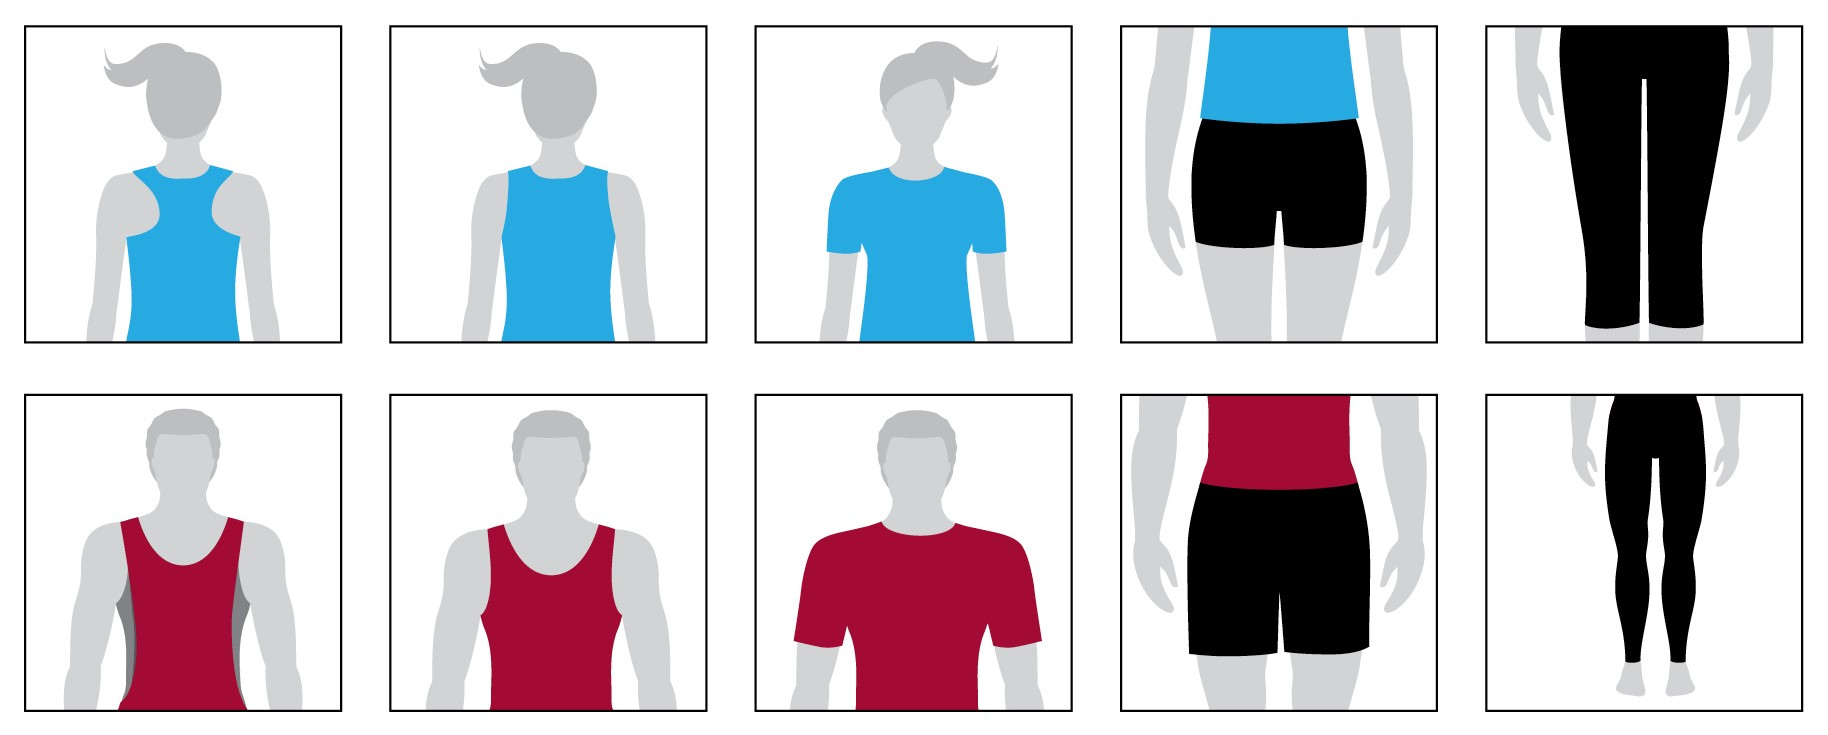 Diagram showing what to wear as noted in the list below the image.